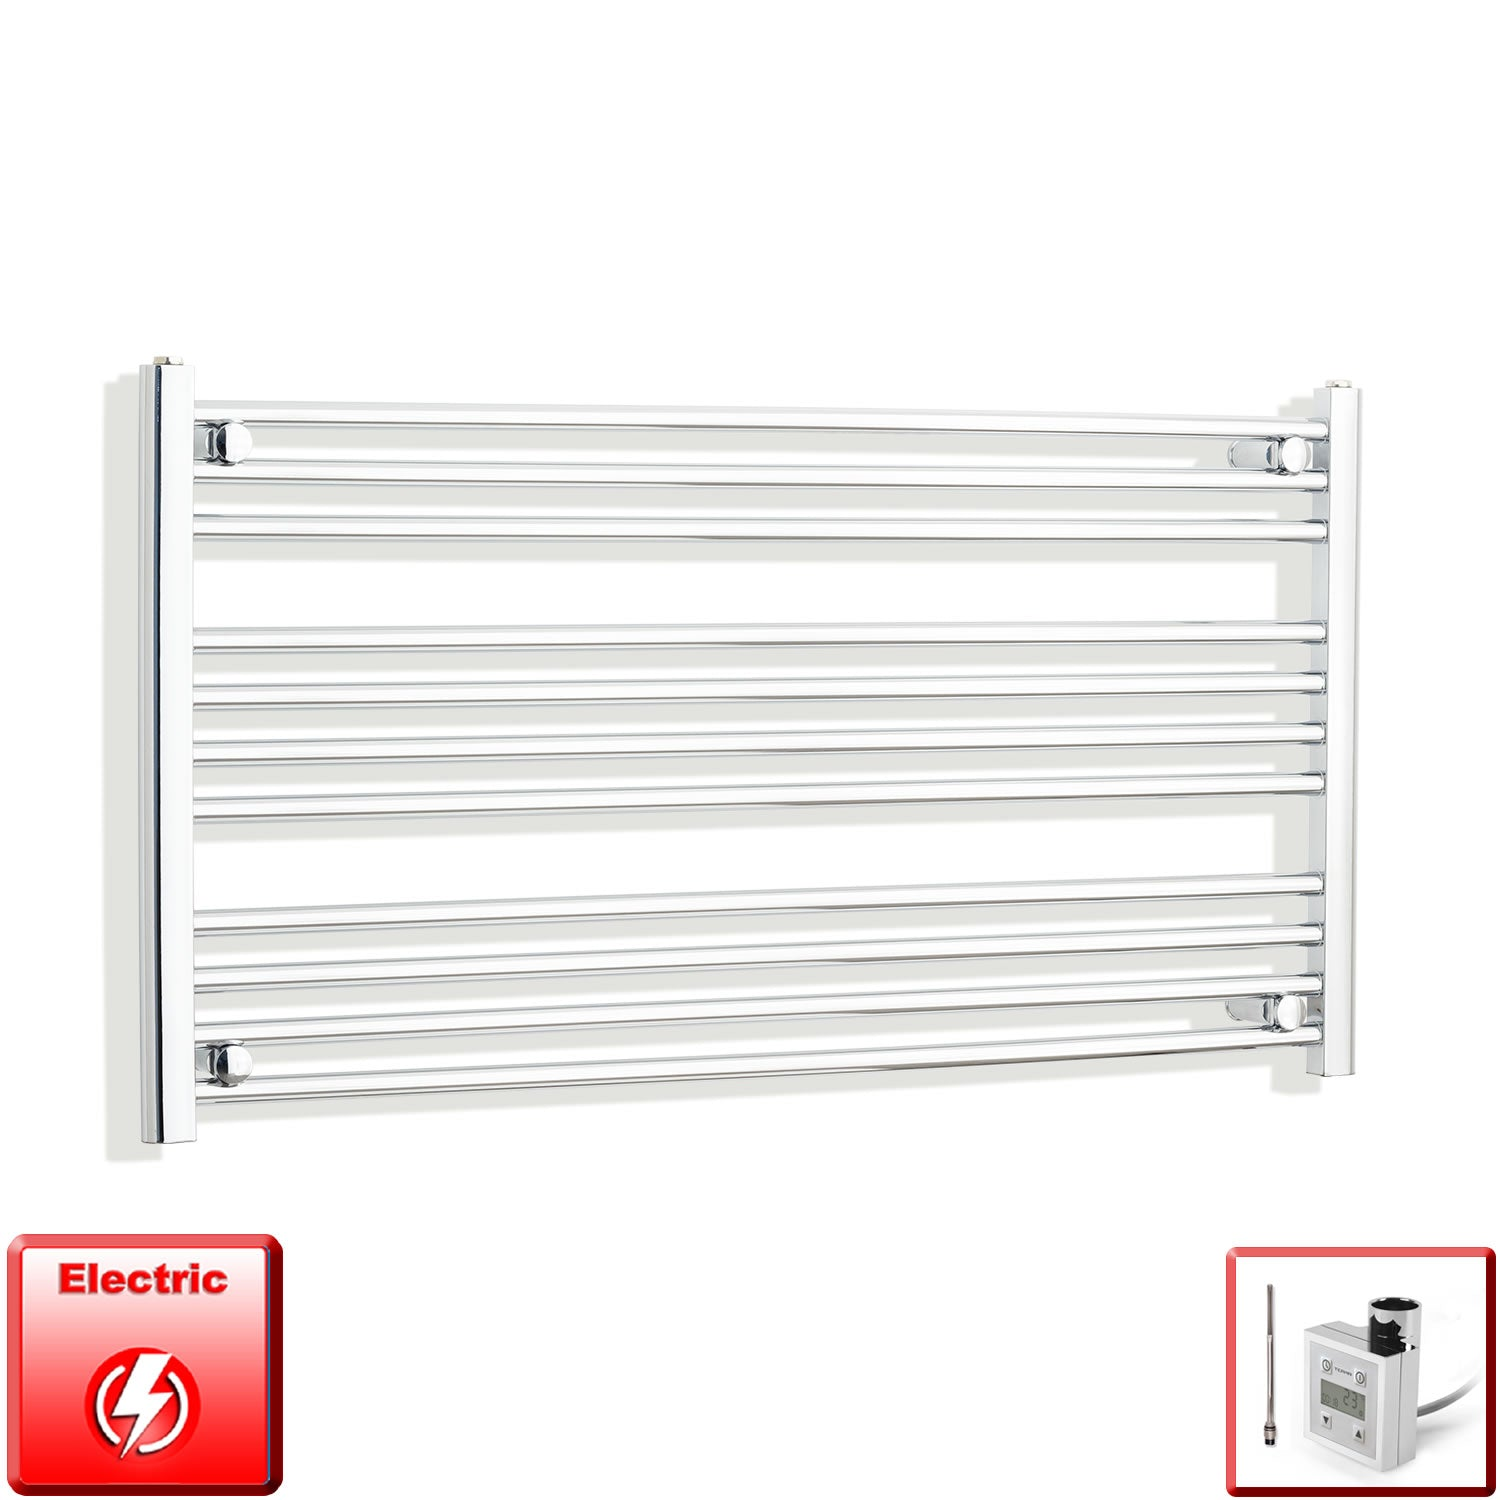 1000mm Wide 600mm High Flat Chrome Pre-Filled Electric Heated Towel Rail Radiator HTR,KTX-3 Thermostatic Element